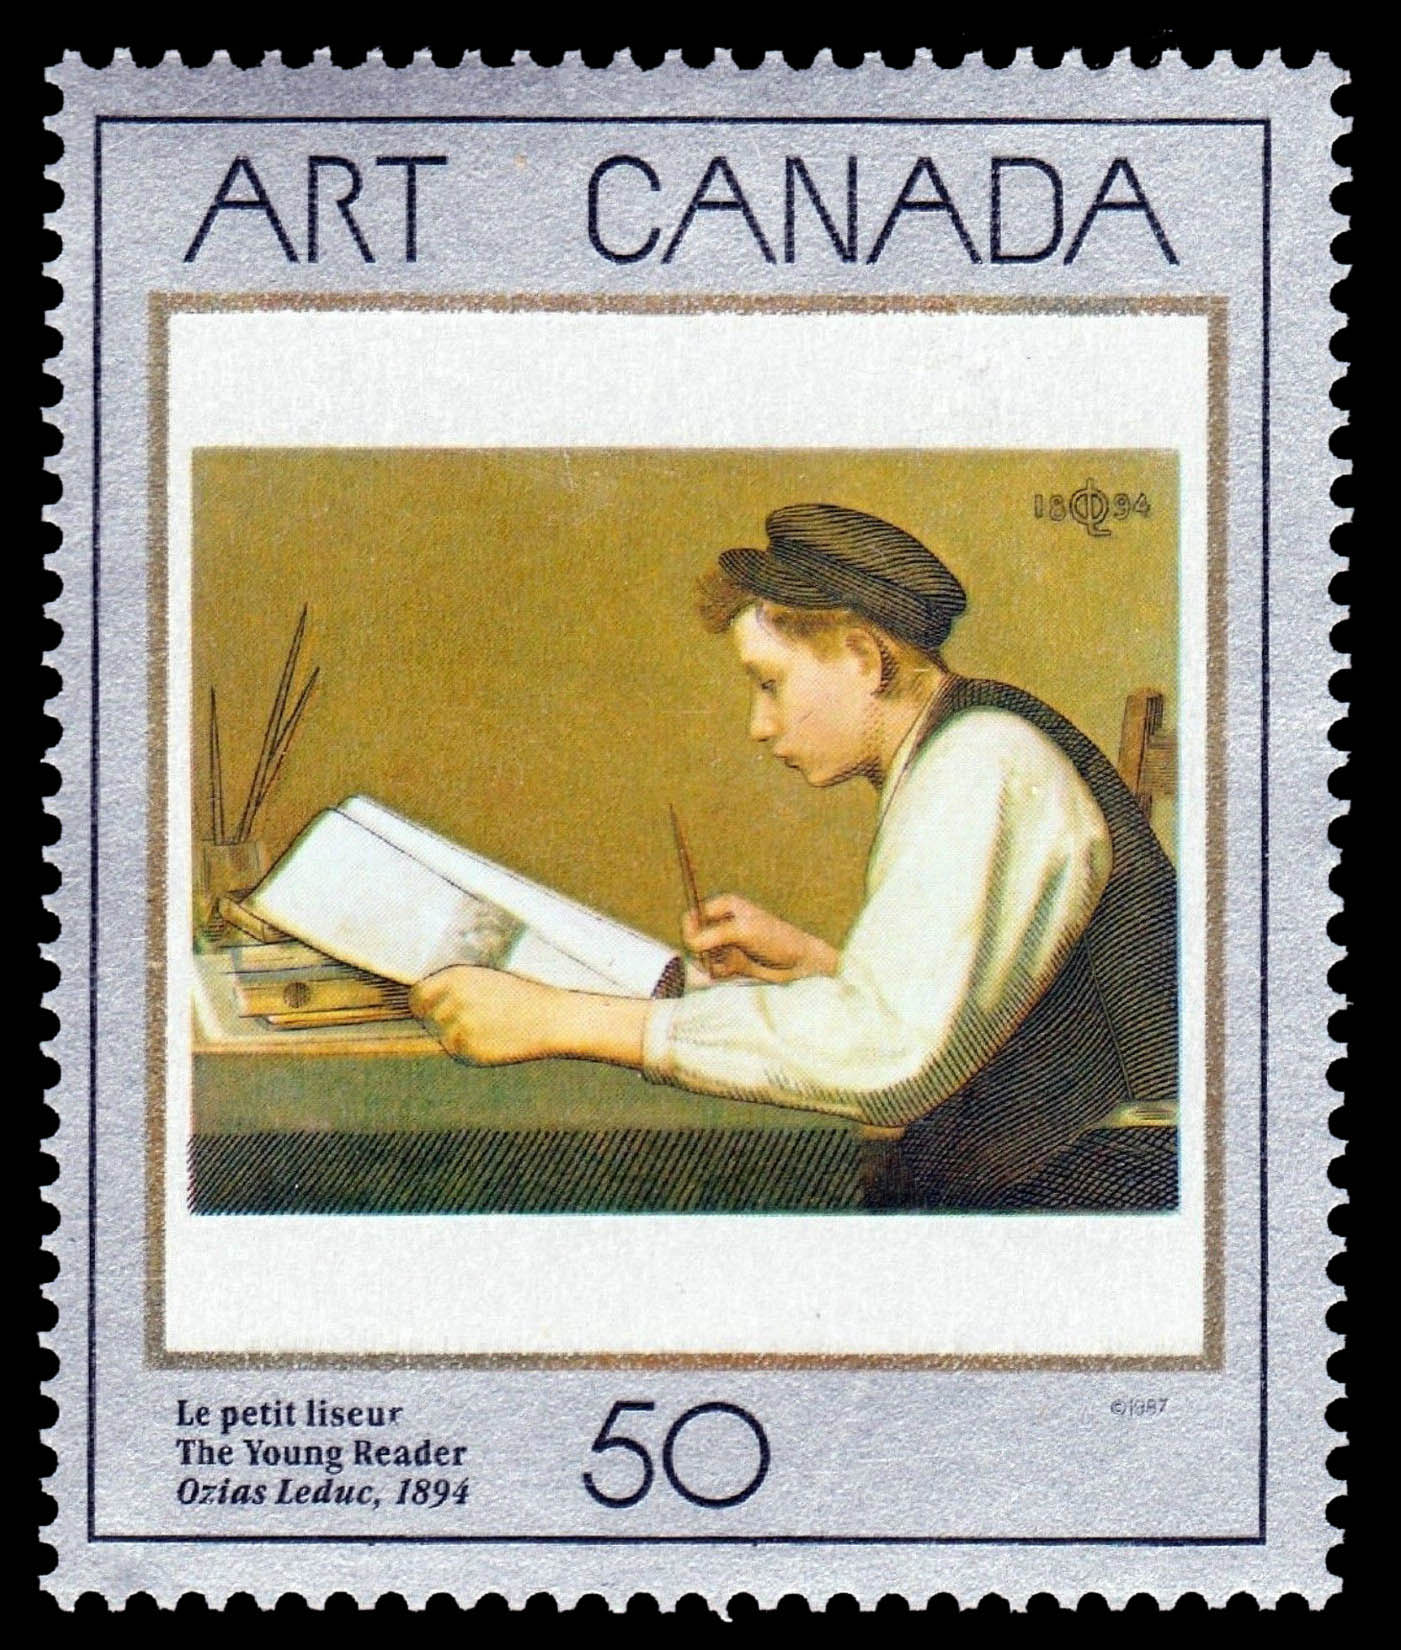 The Young Reader, Ozias Leduc, 1894 Canada Postage Stamp